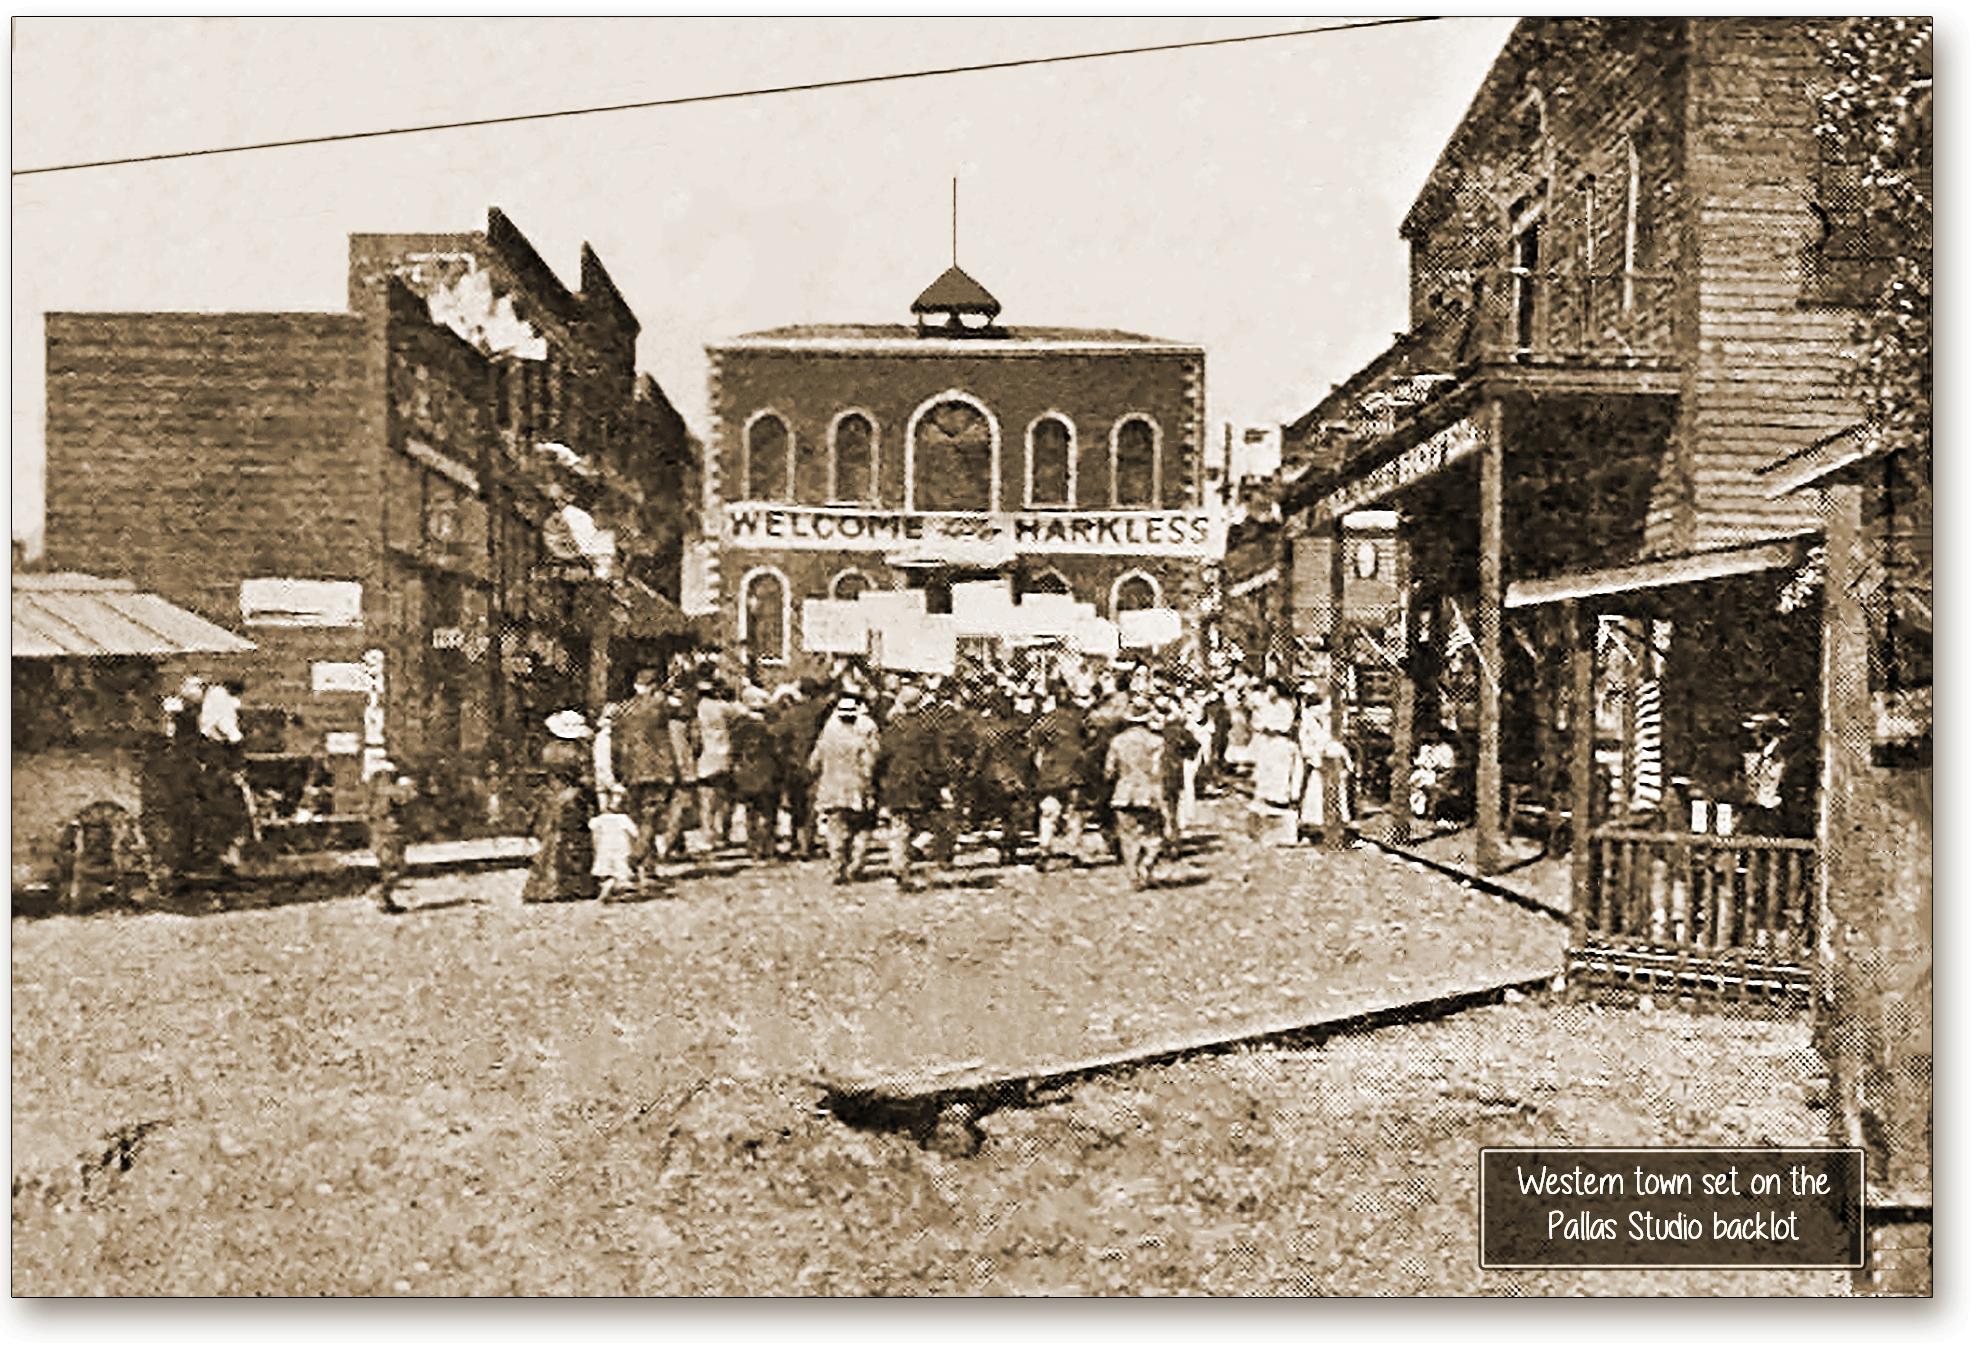 Backlot set at Pallas 1915b